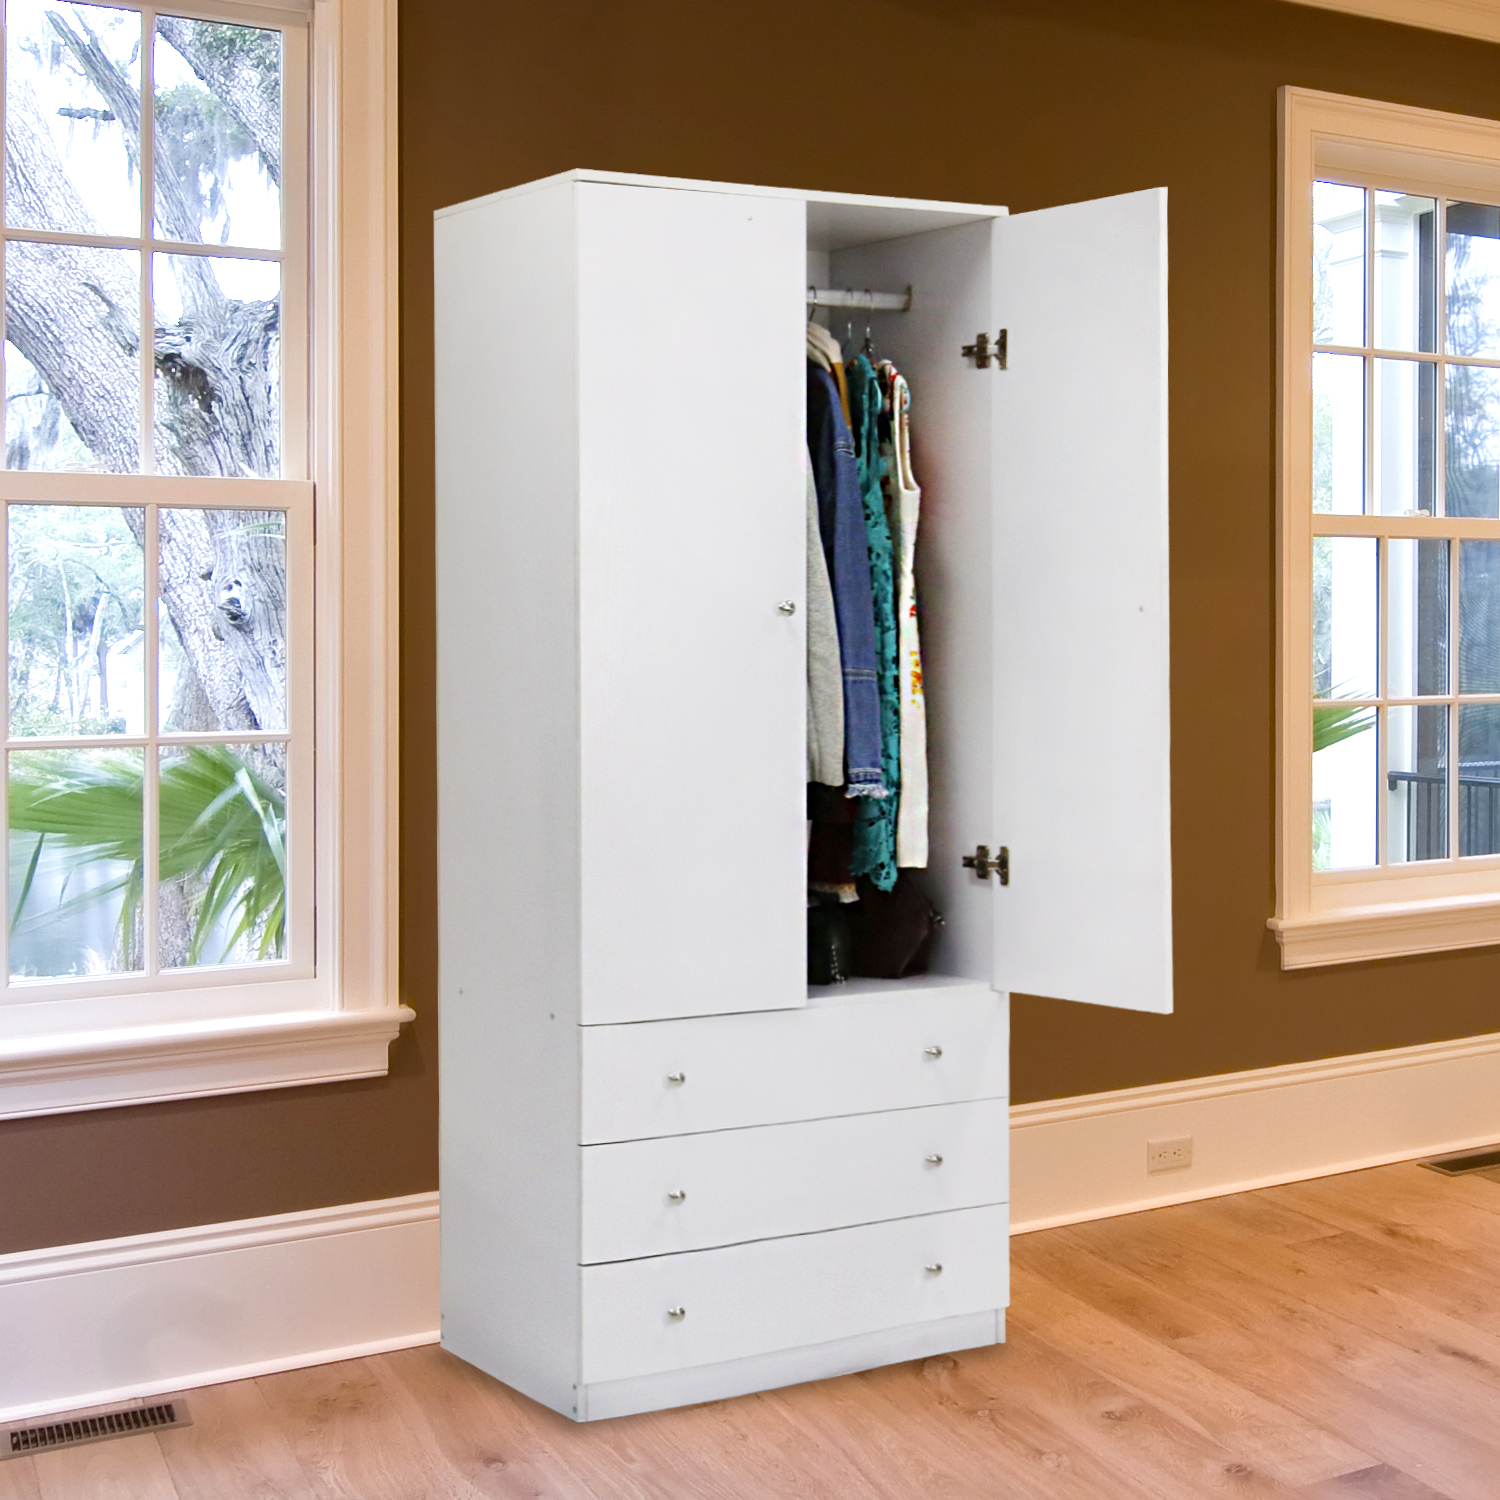 Kinbor Two Door Wardrobe Cabinet Armoire, with Three Drawers, and Hanging Rod, White